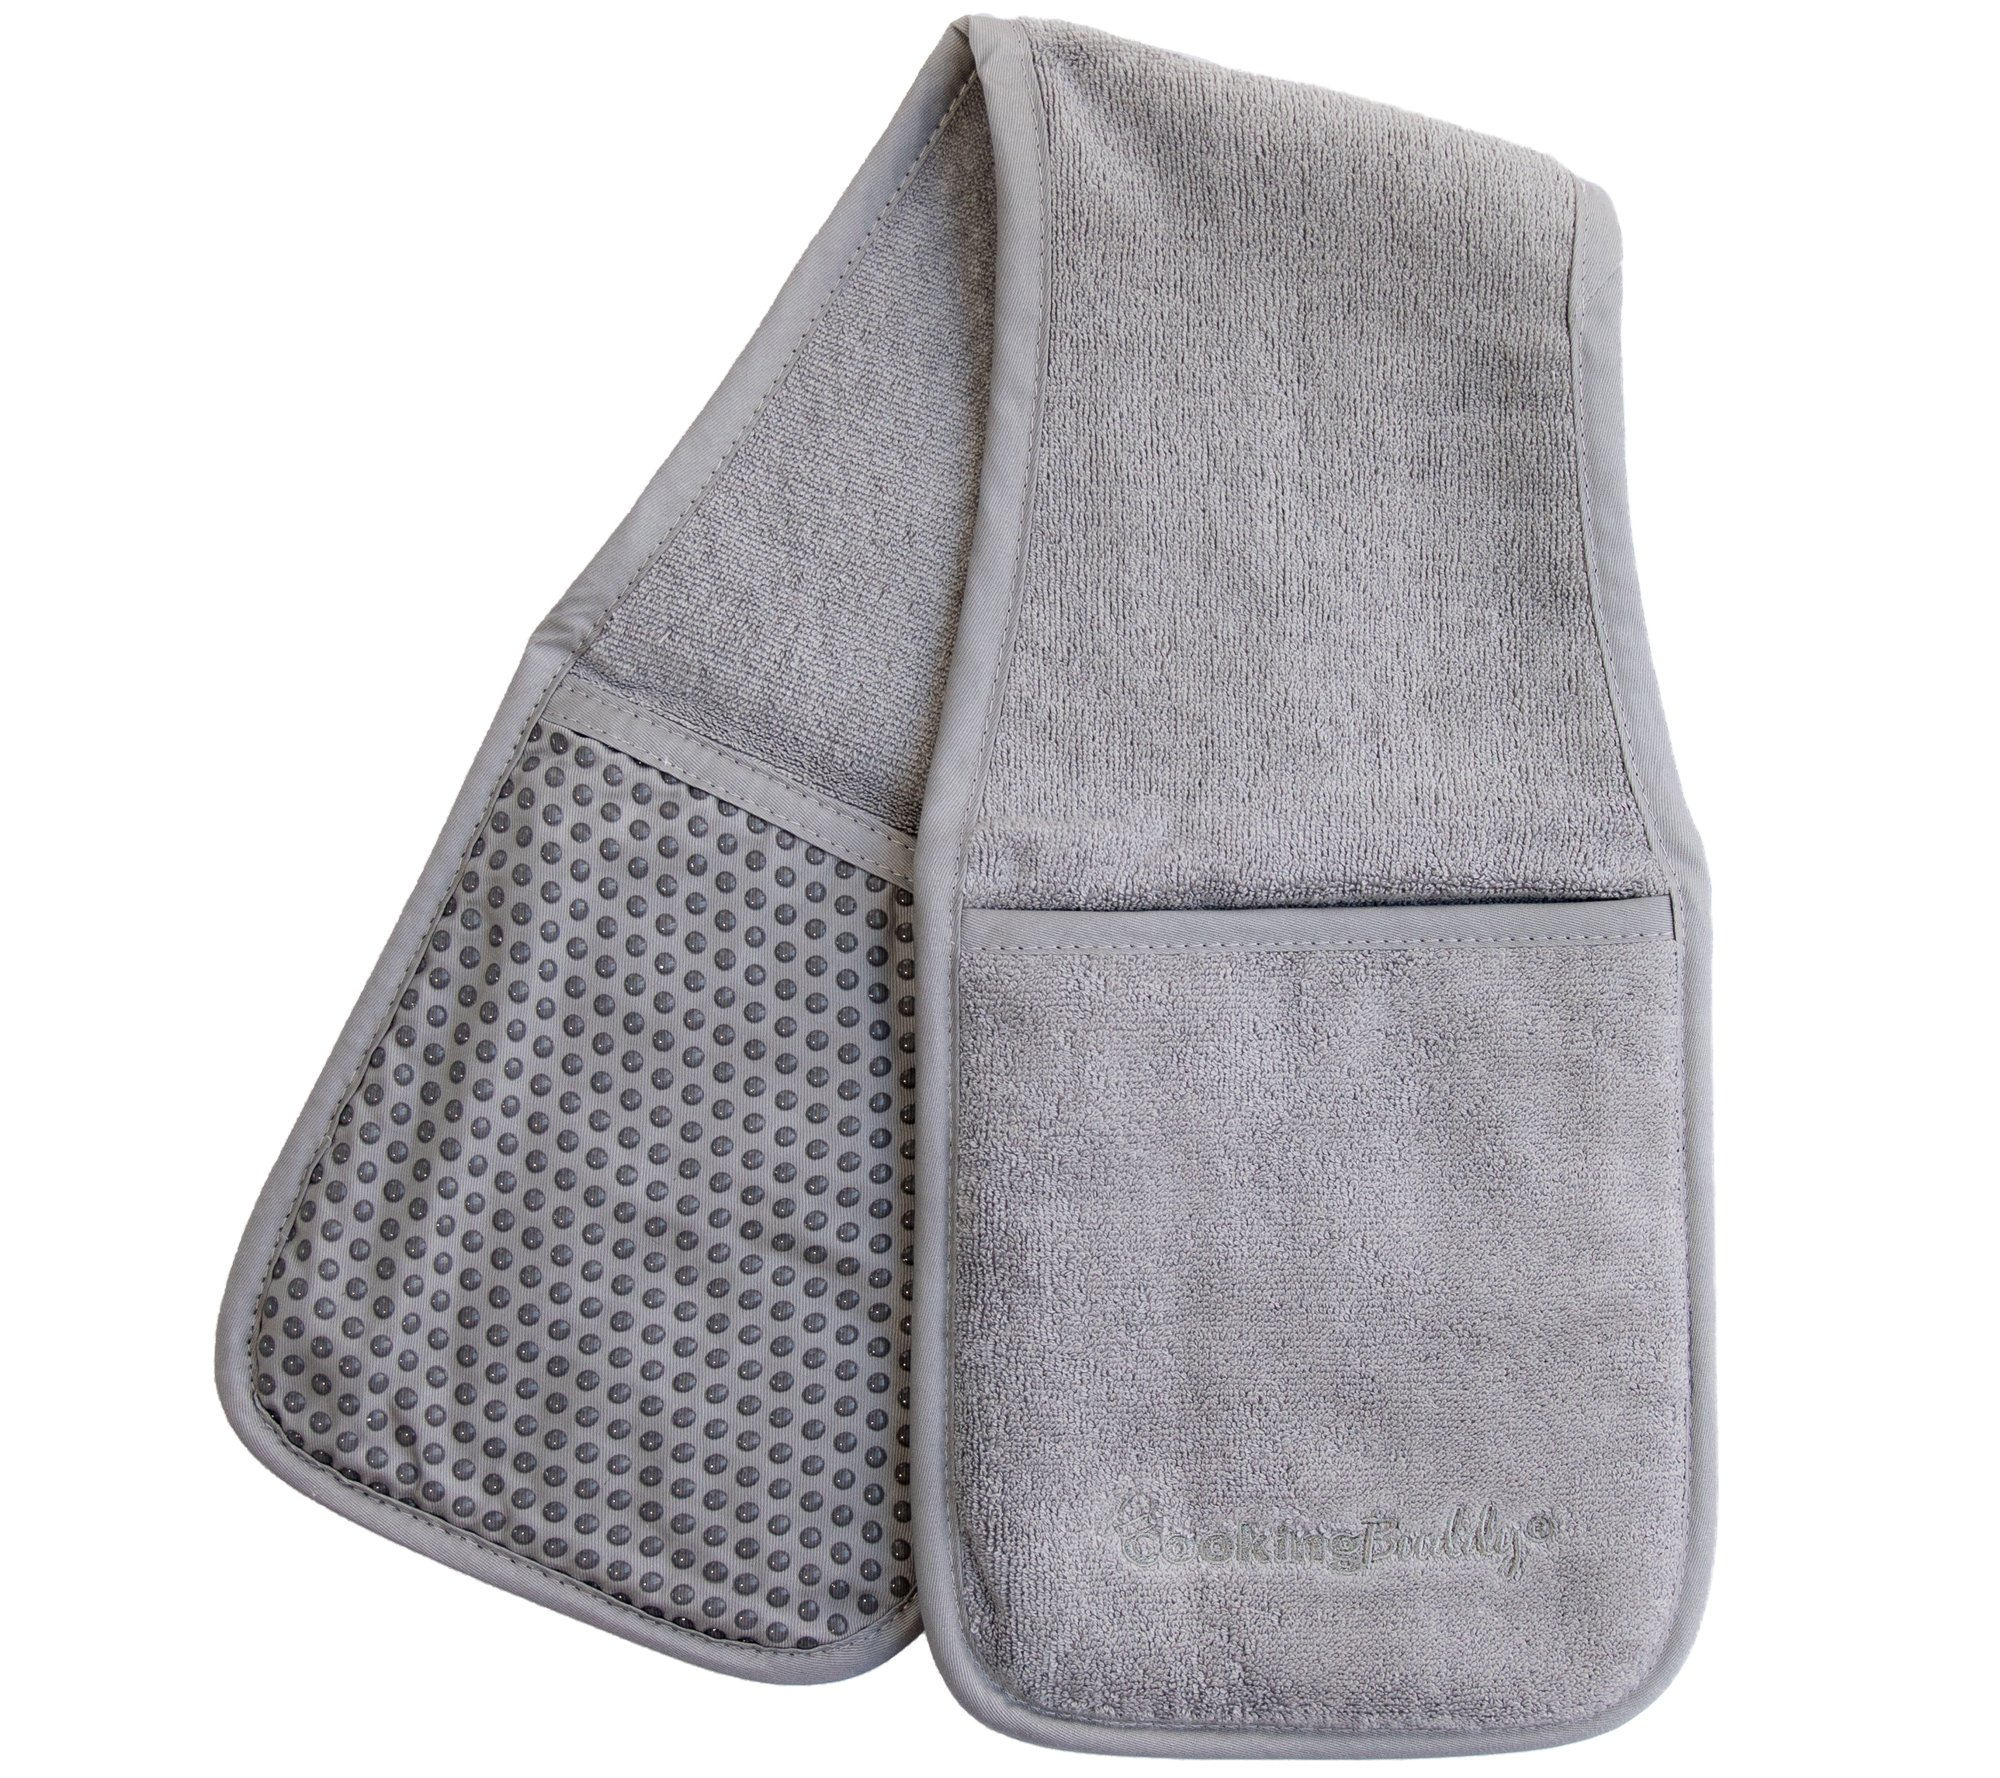 Campanelli's Cooking Buddy - Professional Grade All-In-One Pot Holder, Hand Towel, Lid Grip, Tool Caddy, and Trivet. Heat Resistant up to 500ºF. As Seen On Facebook (Gray)